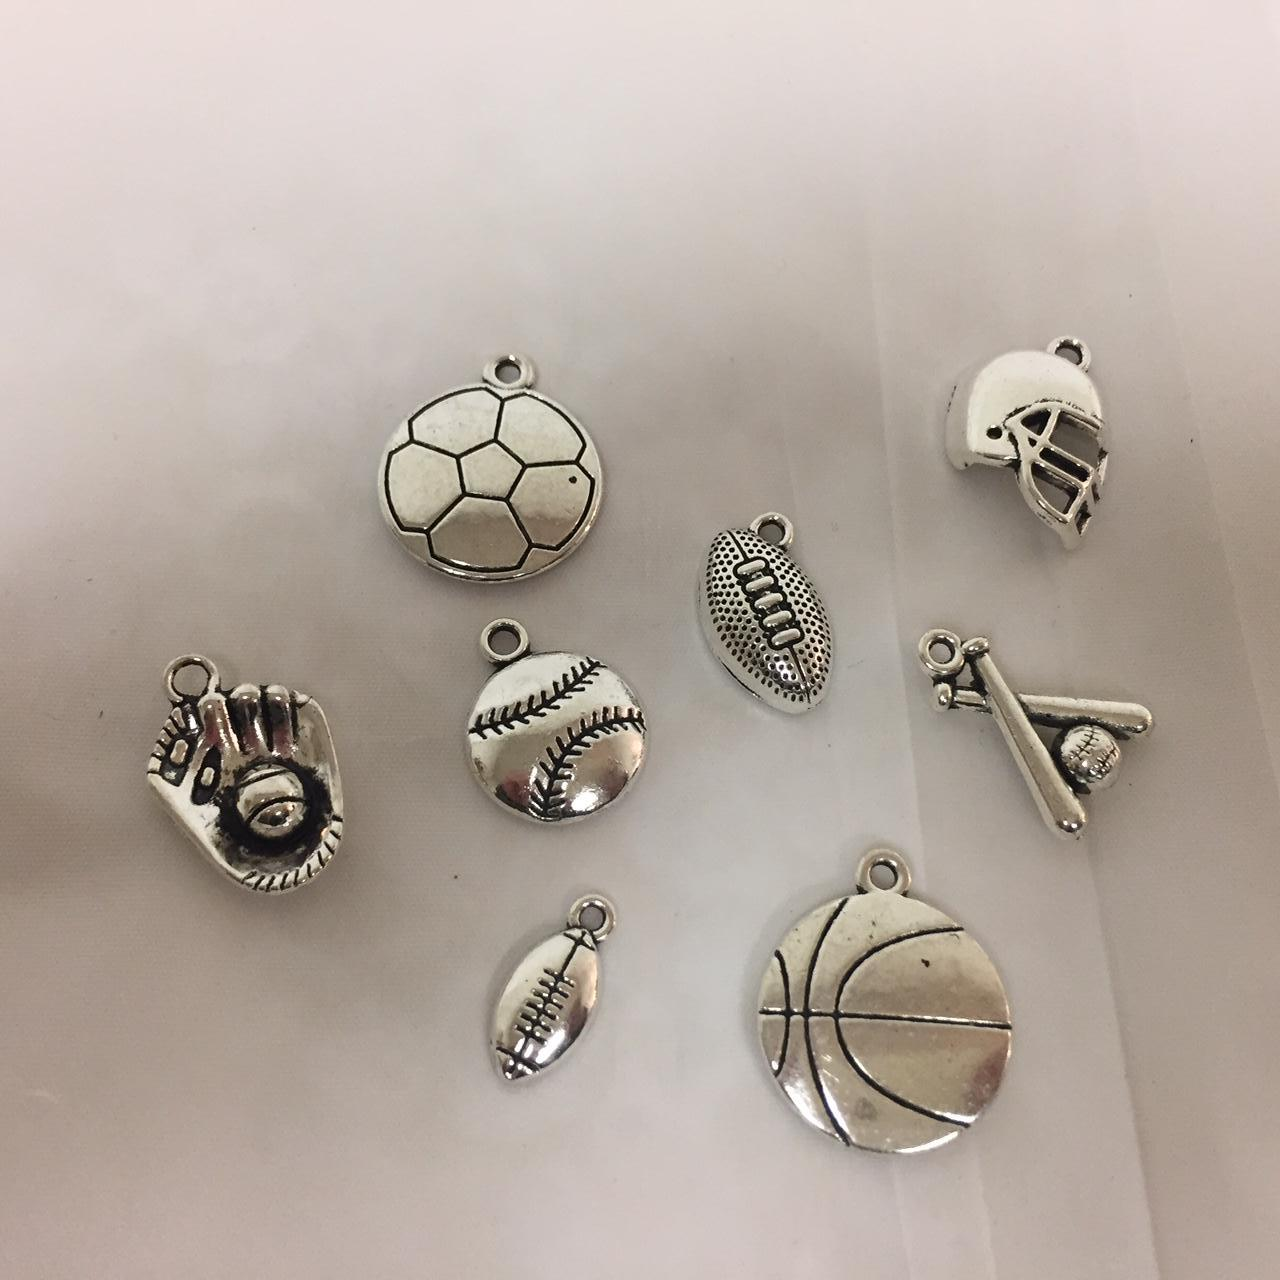 LOT OF 50 PIECES SILVER METAL CHARMS SPORTS PACK